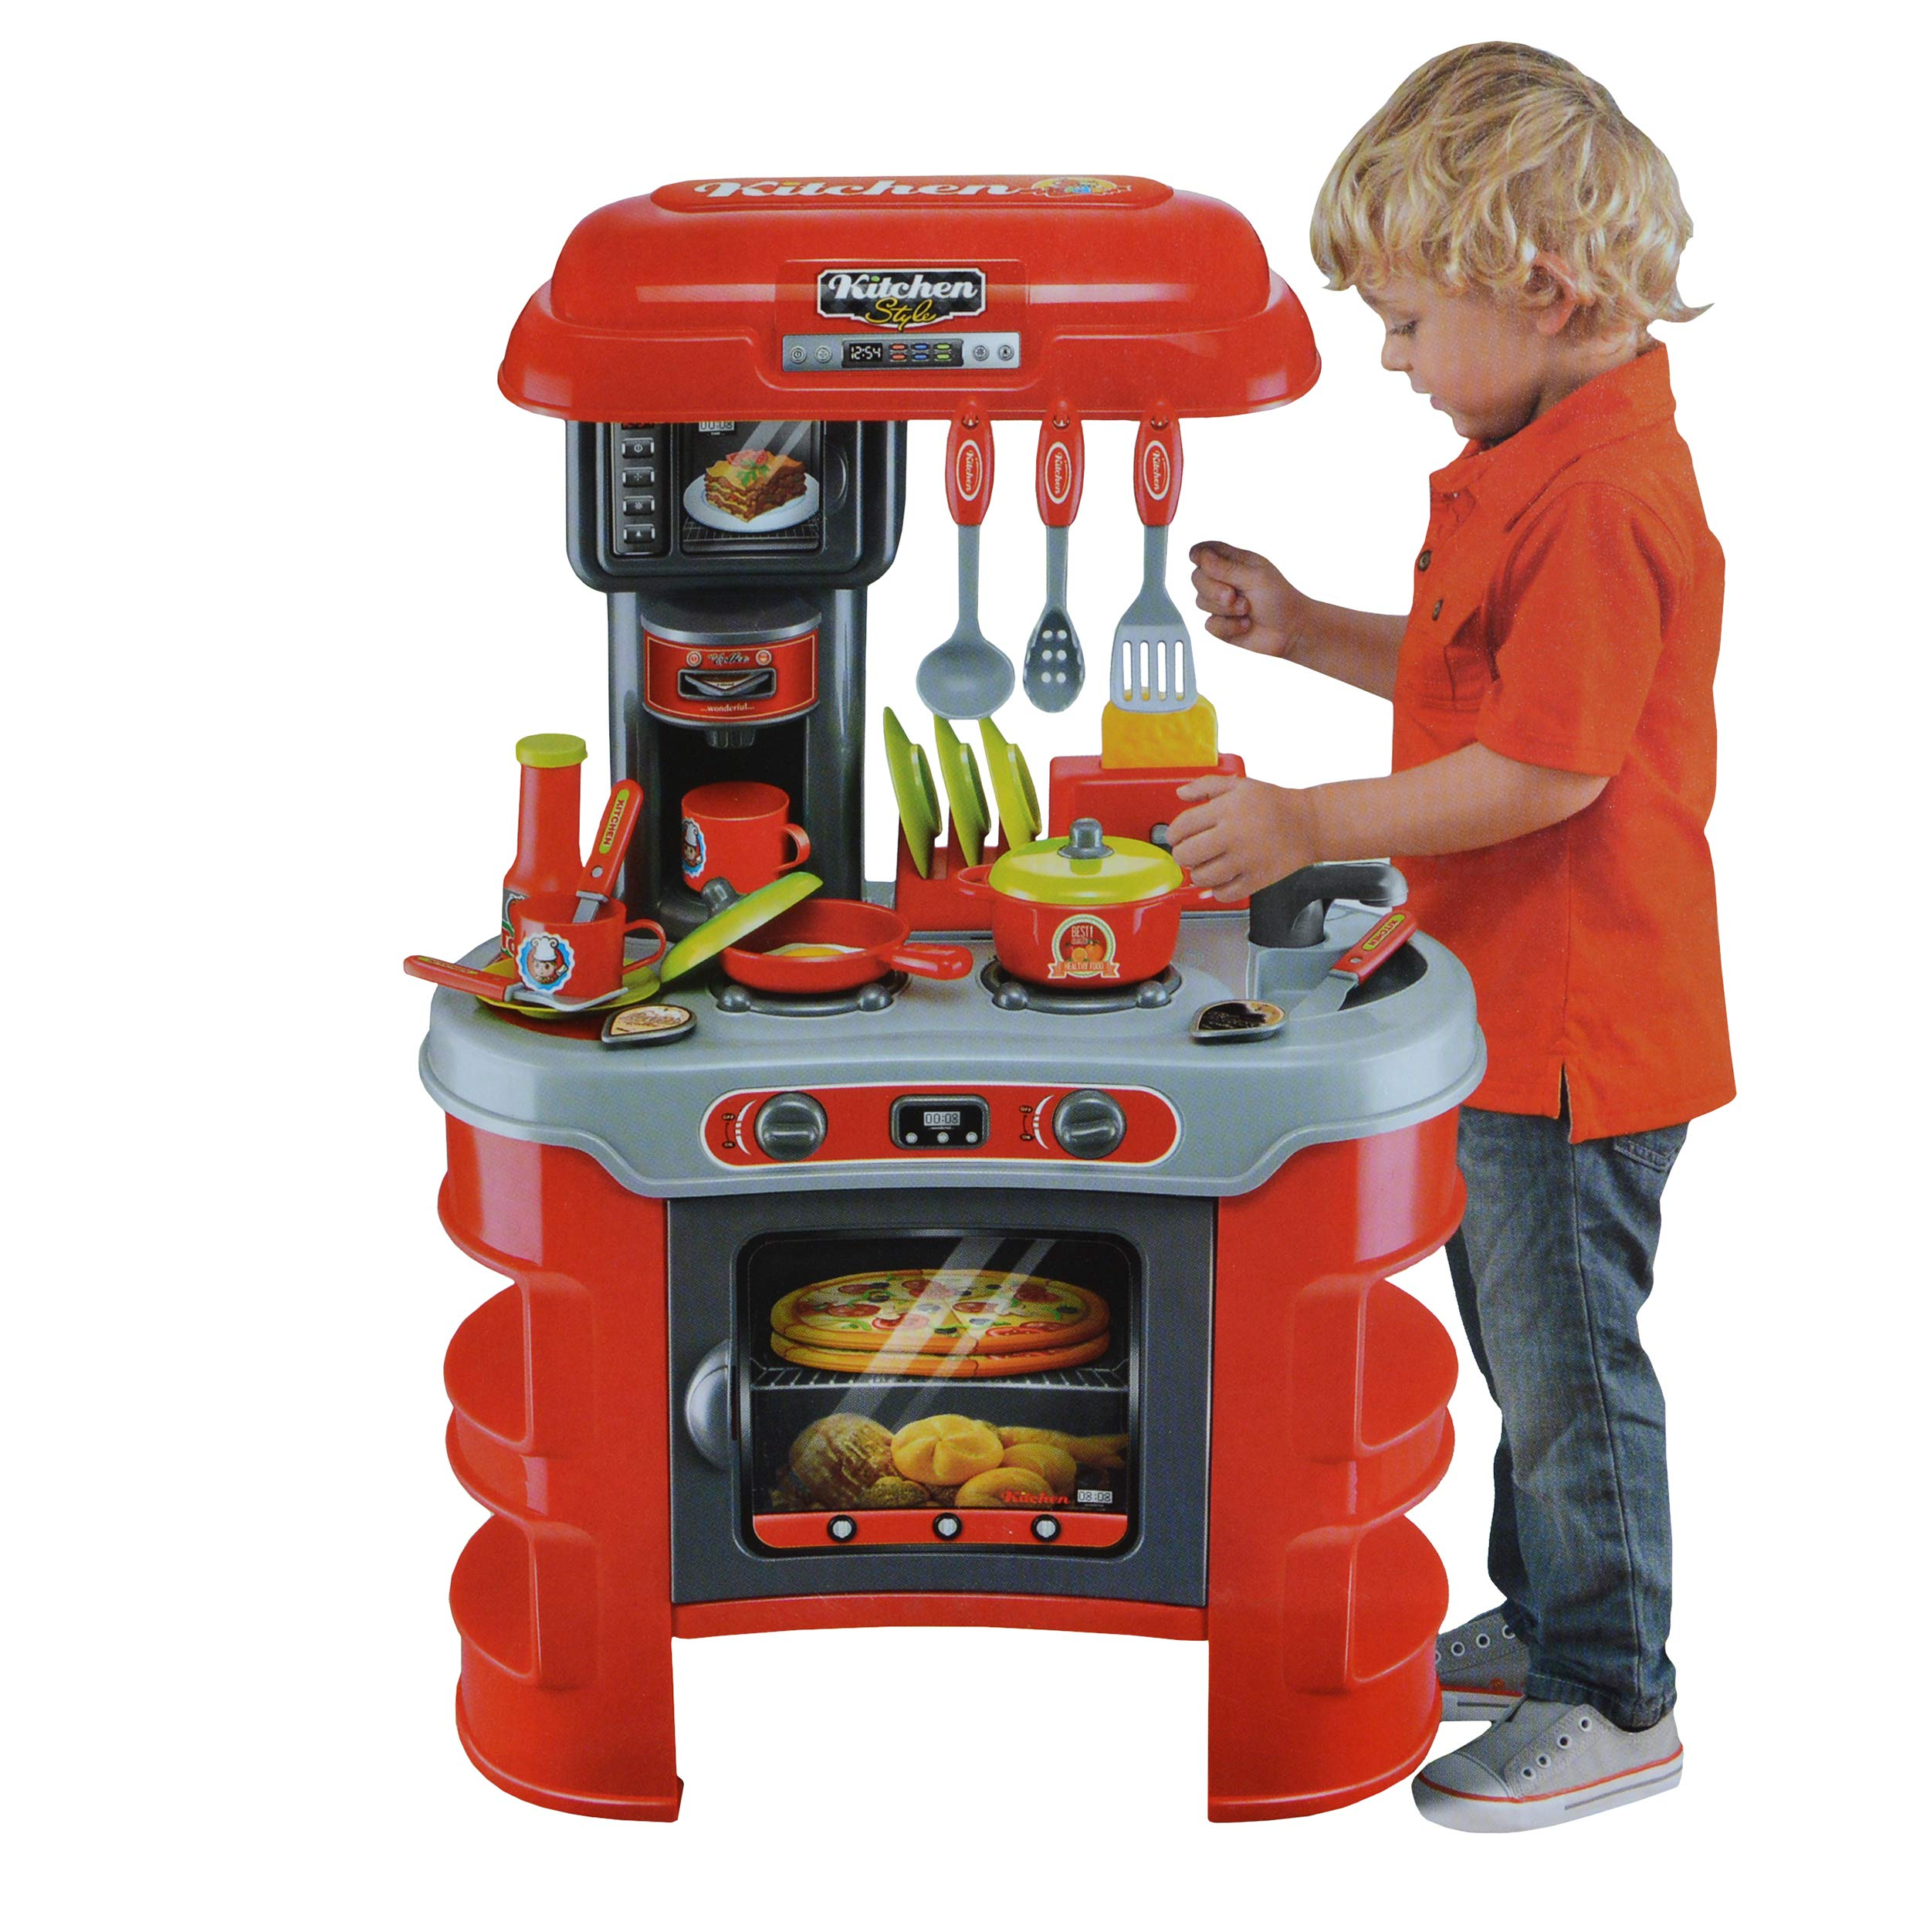 Kids Play Kitchen - Chef Toy Cooking Counter Top Playset For Chiildren Ages 1 to 2 and Toddlers, Pretend Play Small Kitchen - Includes Pots, Pans, Utensils, and Play food (Battery Operated)